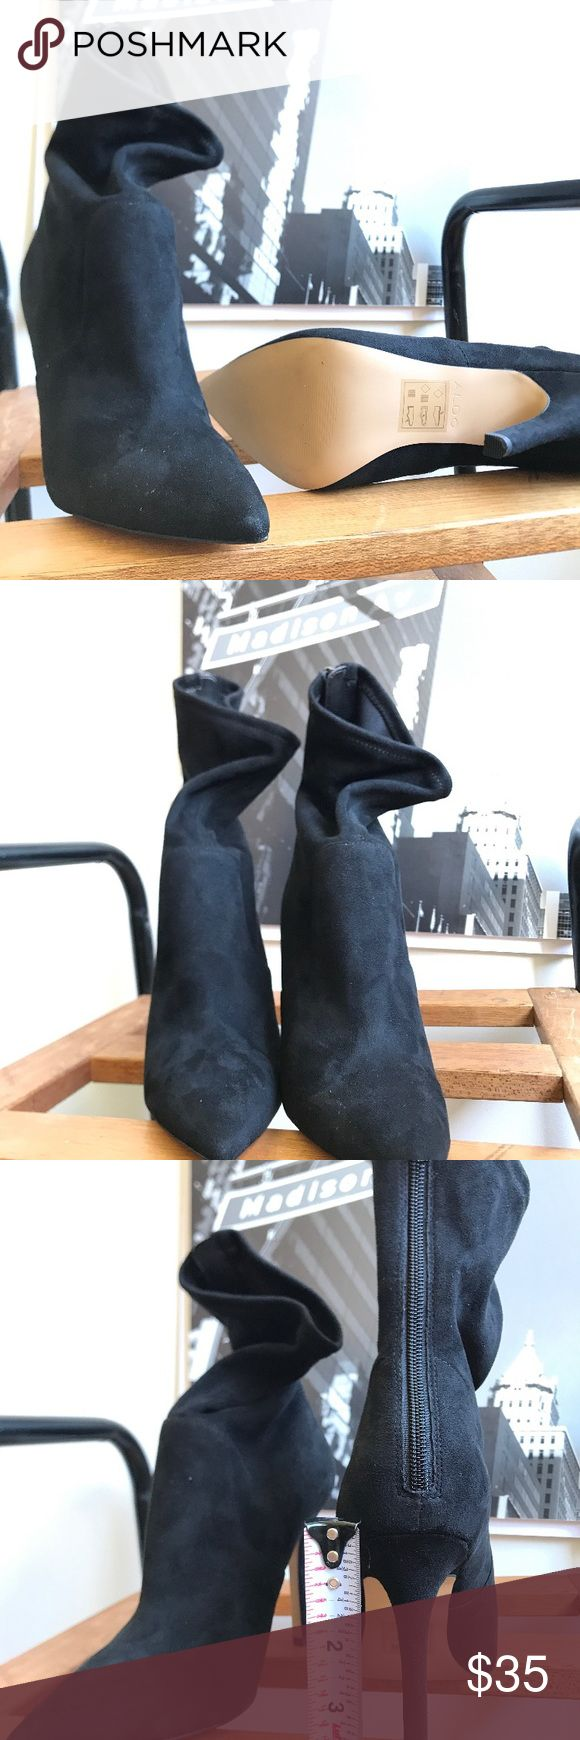 🙌🏾Brand New Aldo Ankle Booties #0182NW Brand new Aldo faux suede ankle booties with stretch material around the ankle area & lower leg area for a closer fit. #women #booties #anklebooties #boots #Aldo #size6.5 Aldo Shoes Ankle Boots & Booties